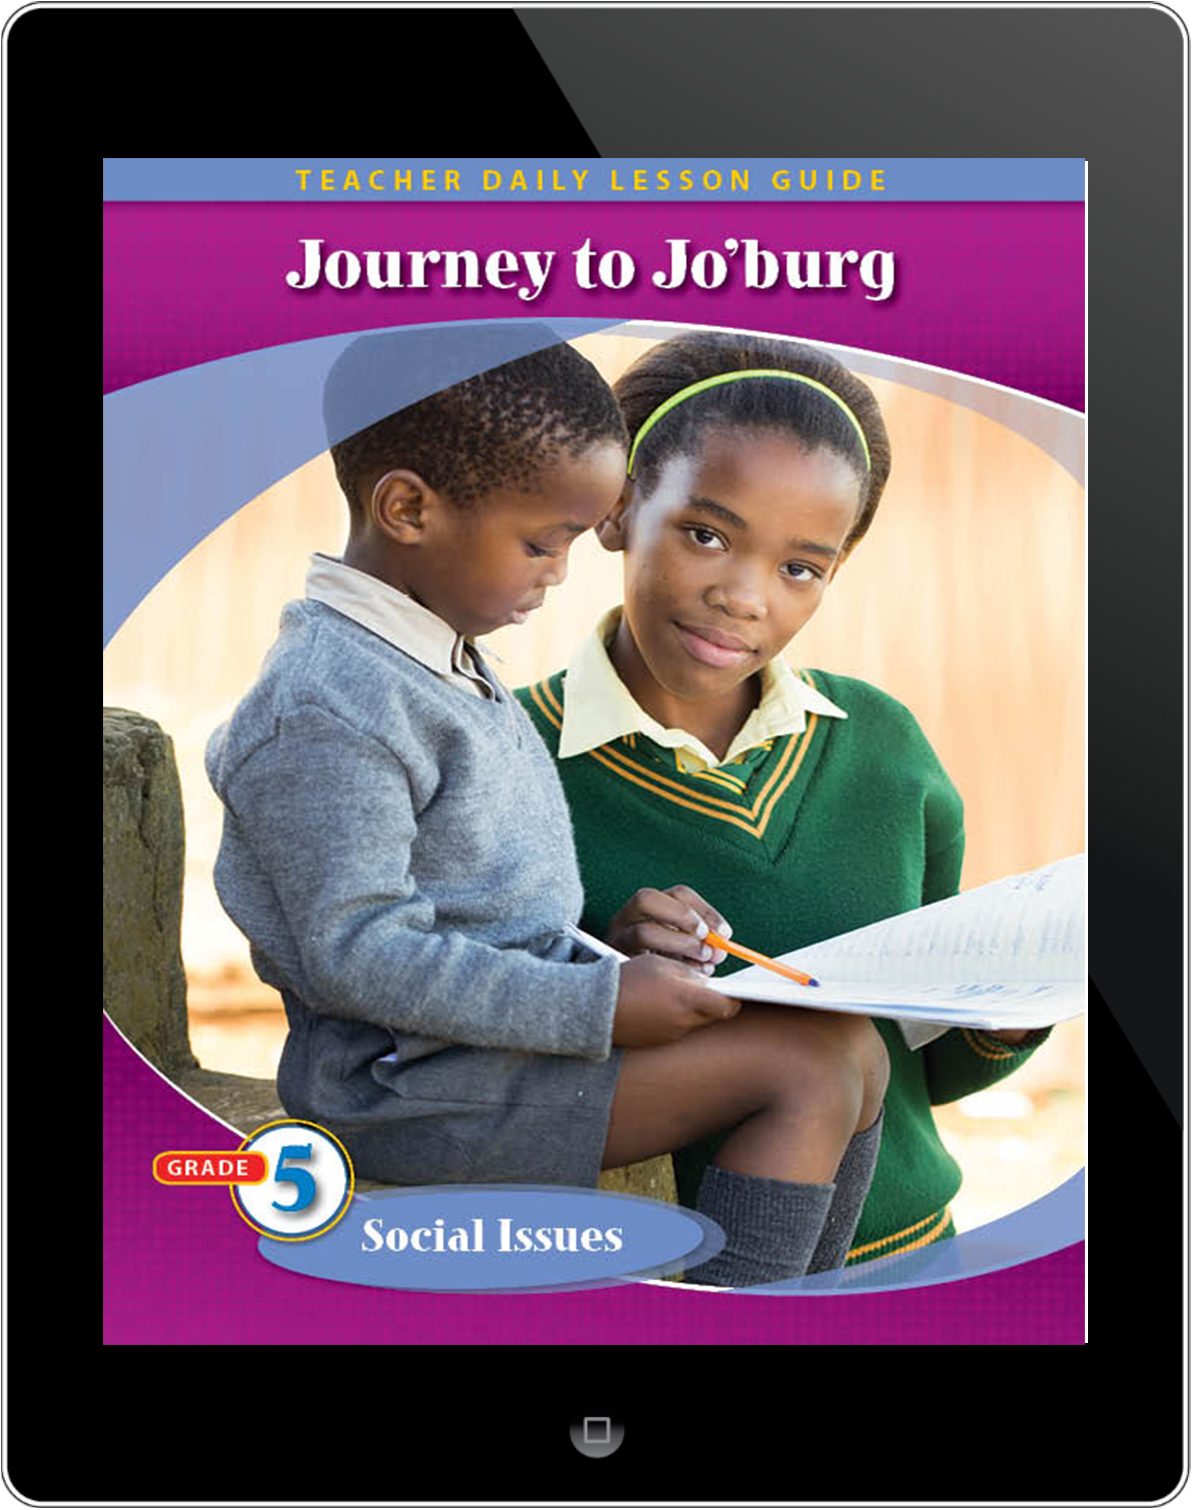 Pathways2.0 Grade 5 Social Issues Unit: Journey to Johannesburg Daily Lesson Guide 5 Year License